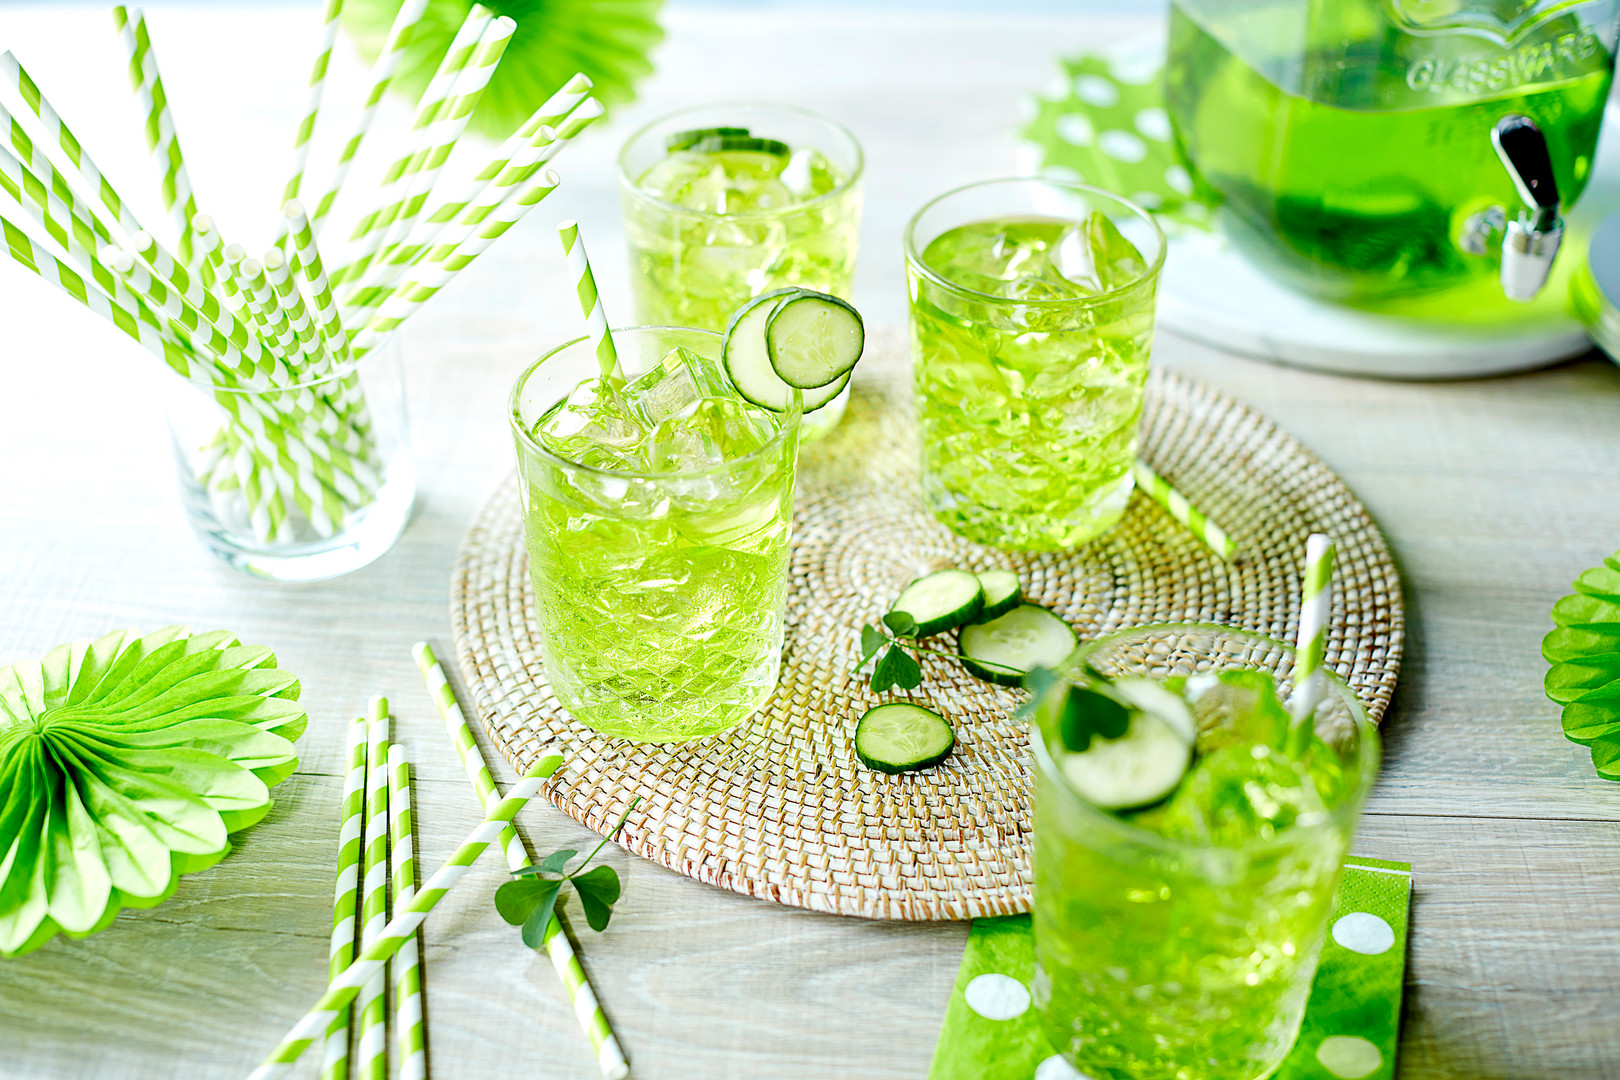 St. Patty's Day Tablescape